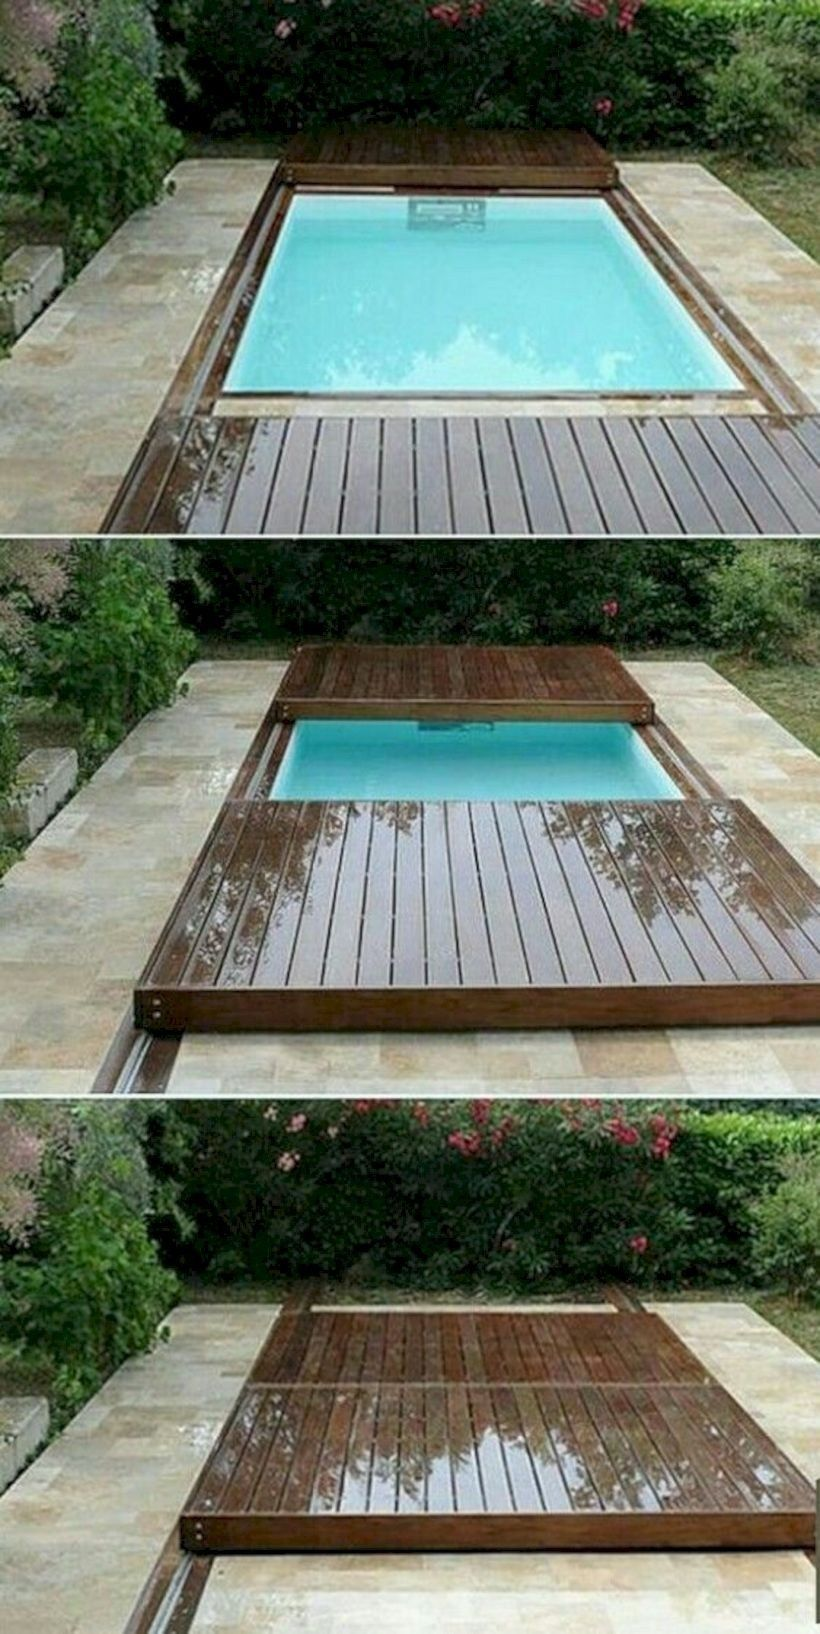 16 Decorating Tiny Pool on Your Backyard Garden